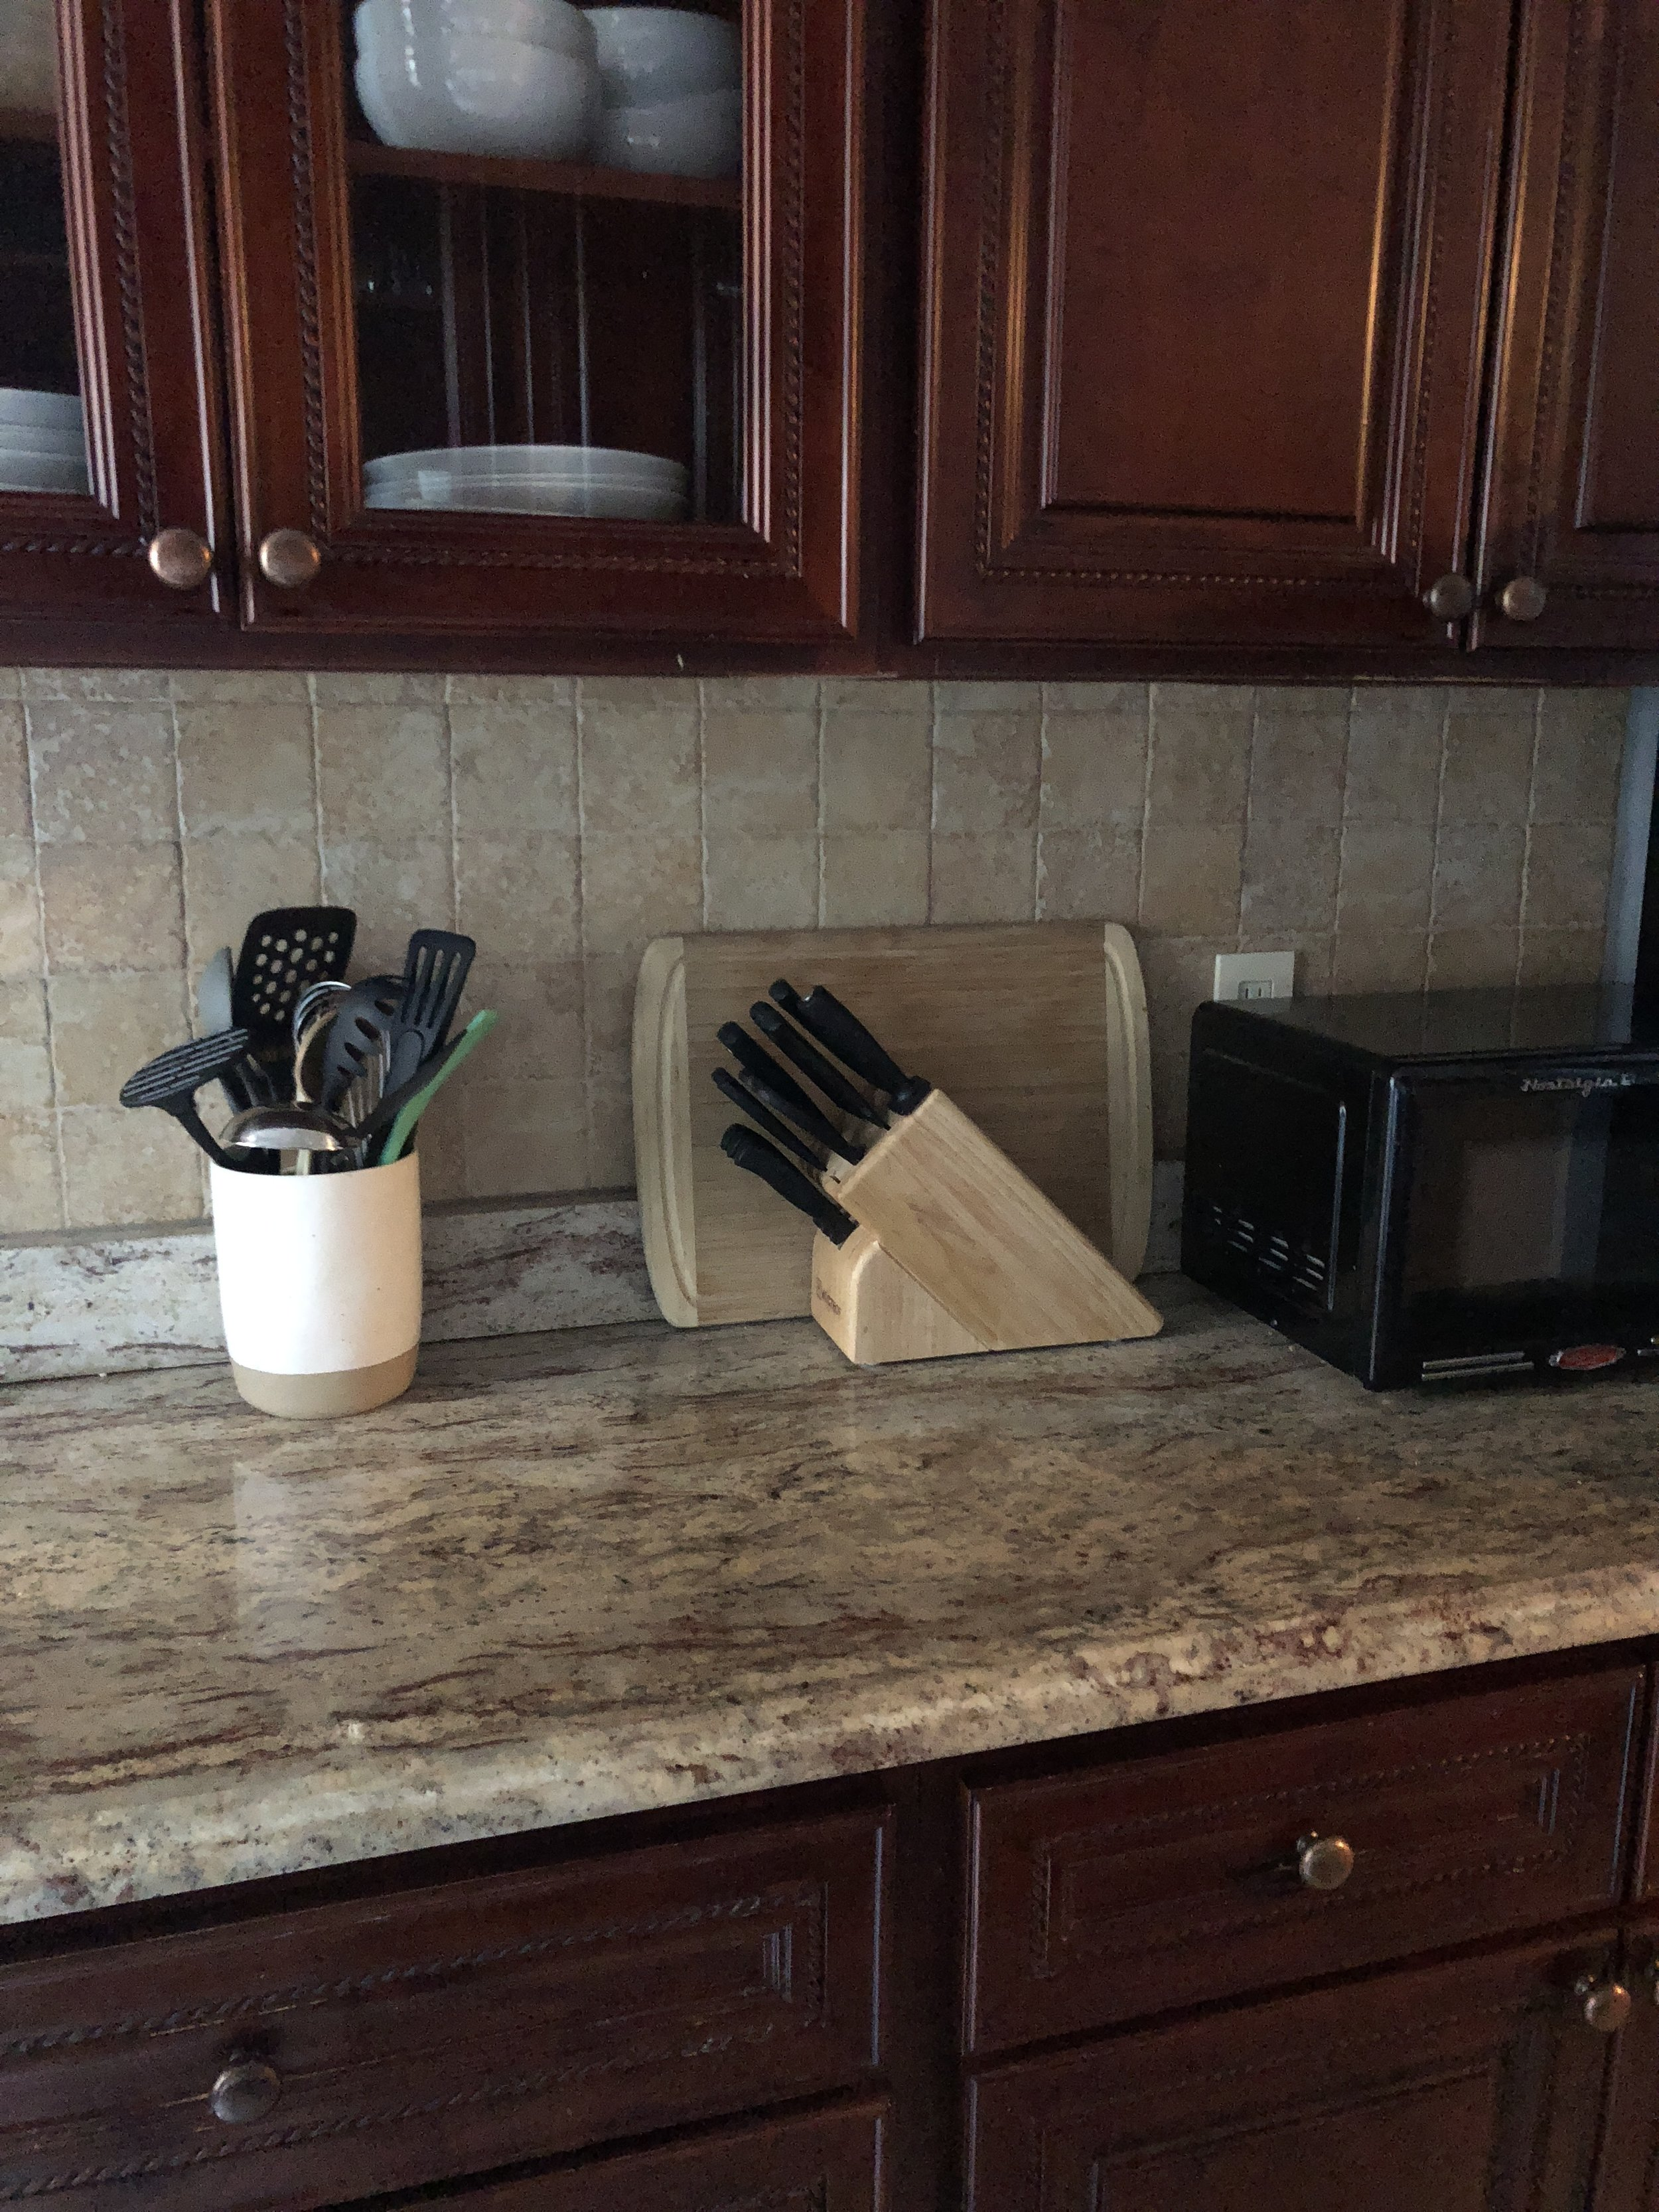 Utensils, cutting boards and microwave